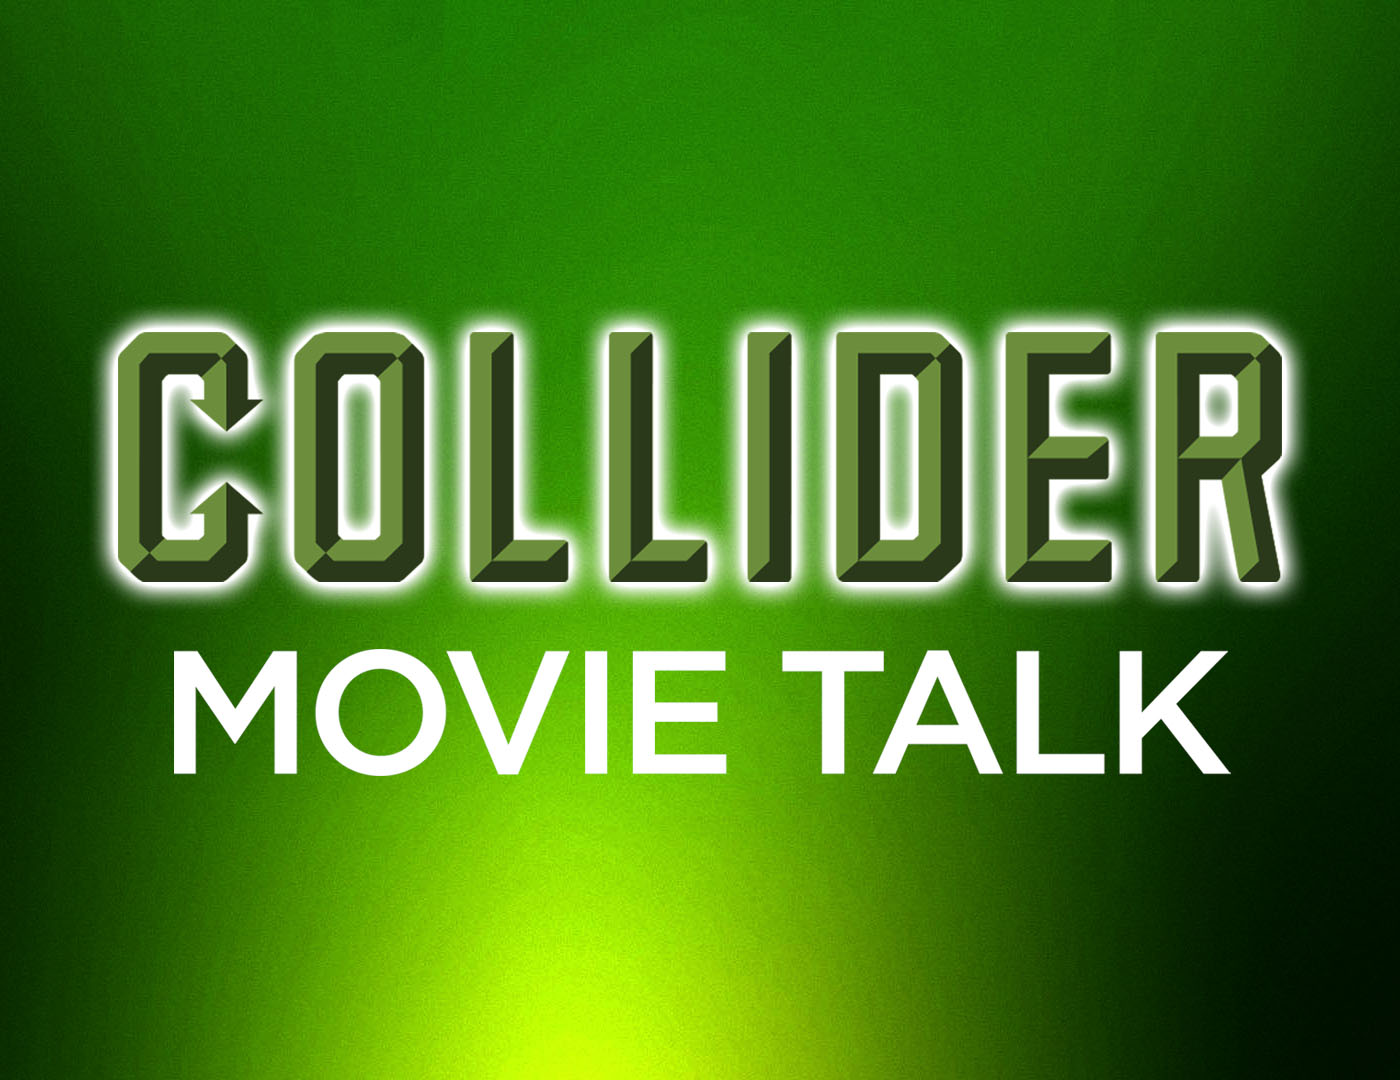 Collider Movie Talk - Hugh Jackman Suggests Tom Hardy As The Next Wolverine